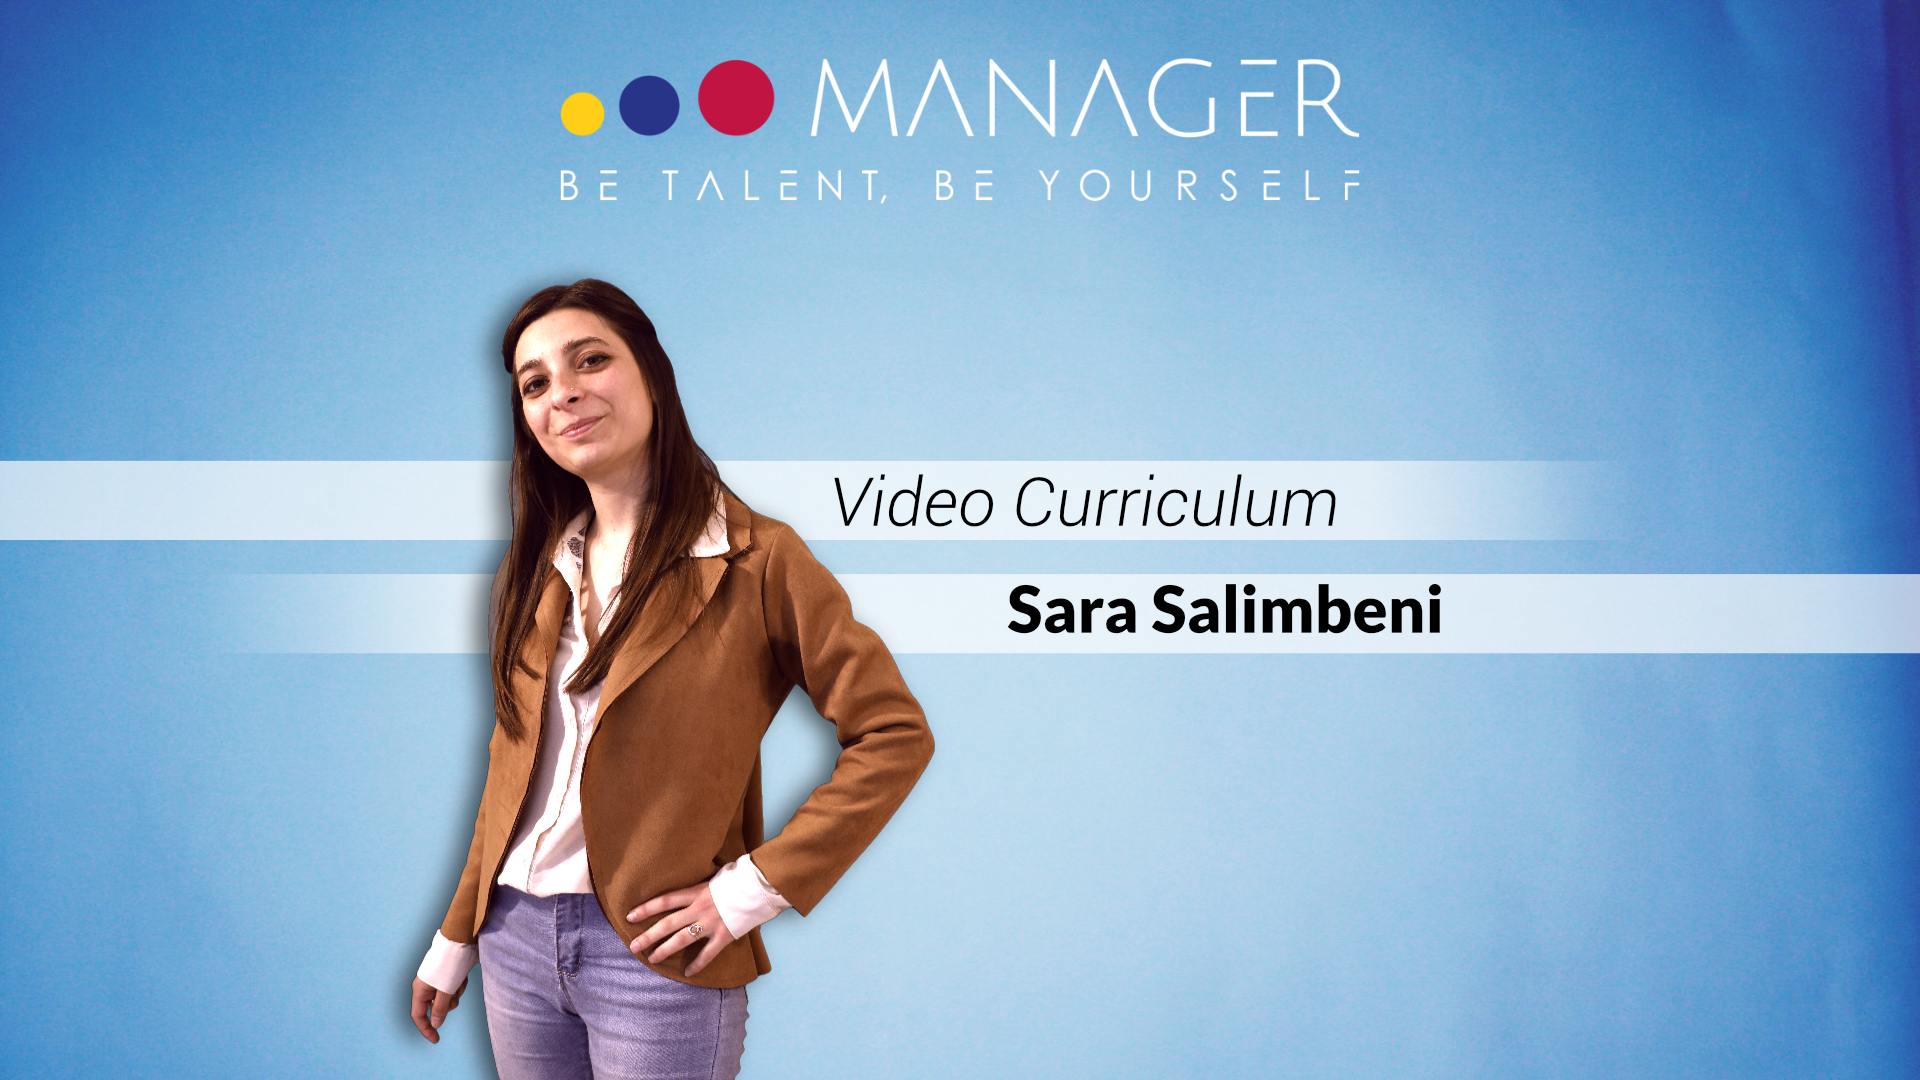 video curriculum di Sara Salimbeni